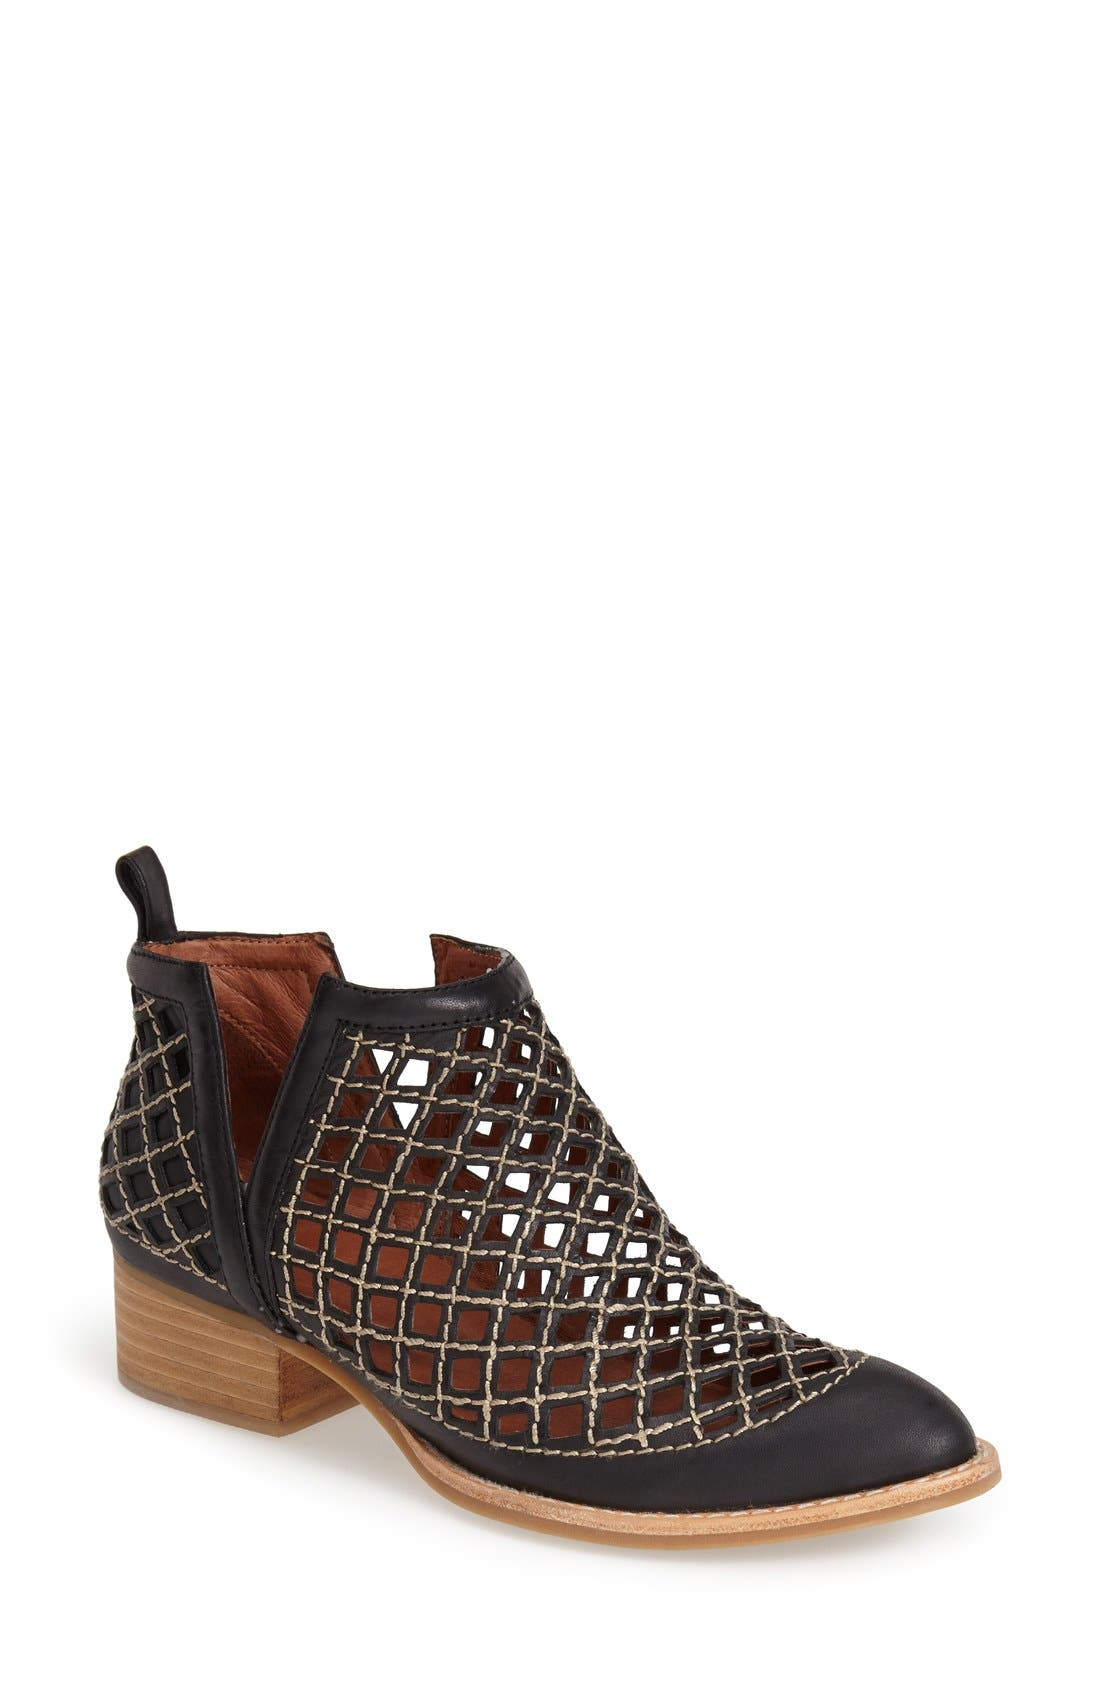 Taggart Ankle Boot,                             Main thumbnail 1, color,                             001